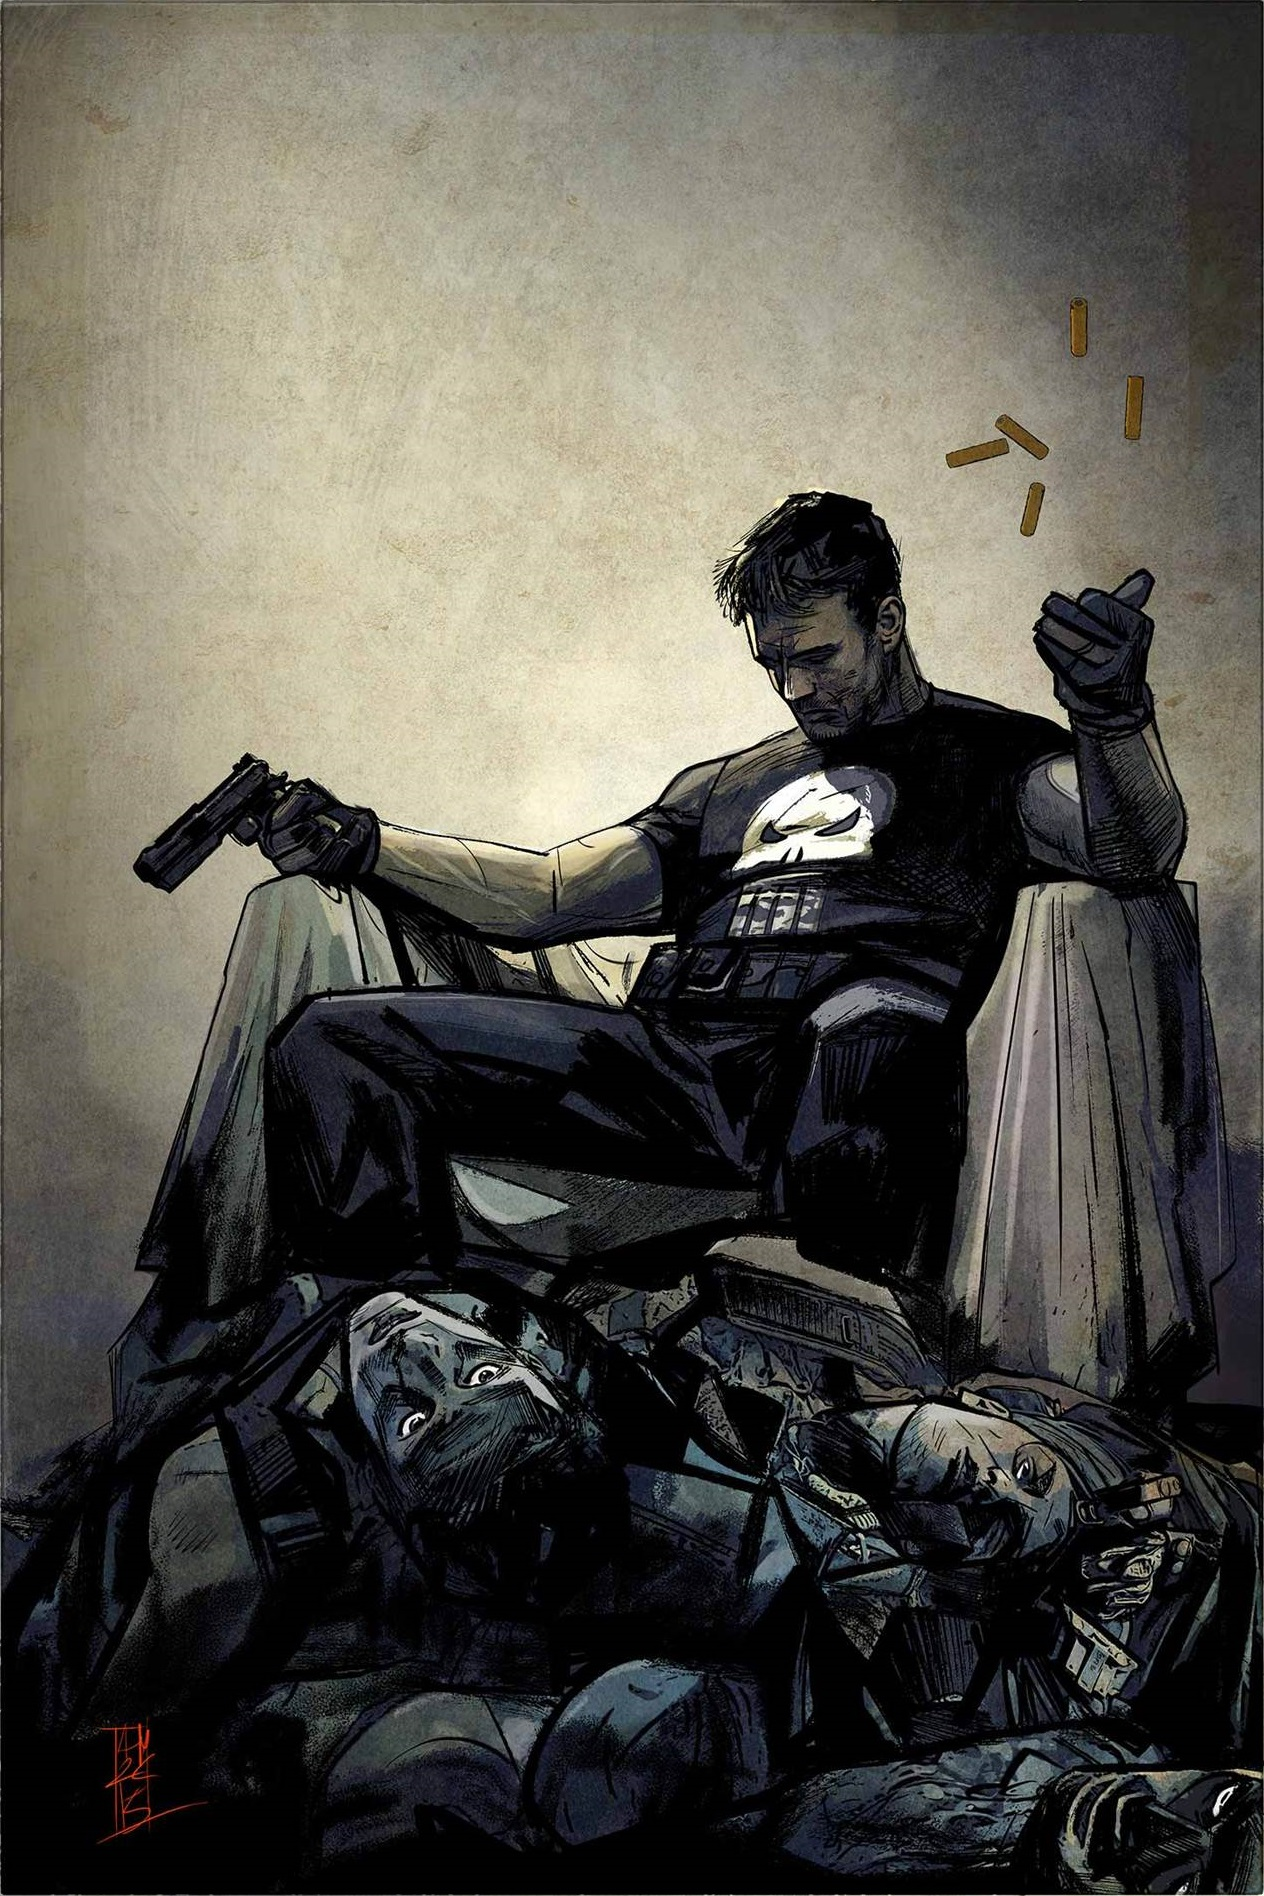 Variant Cover by Alex Maleev